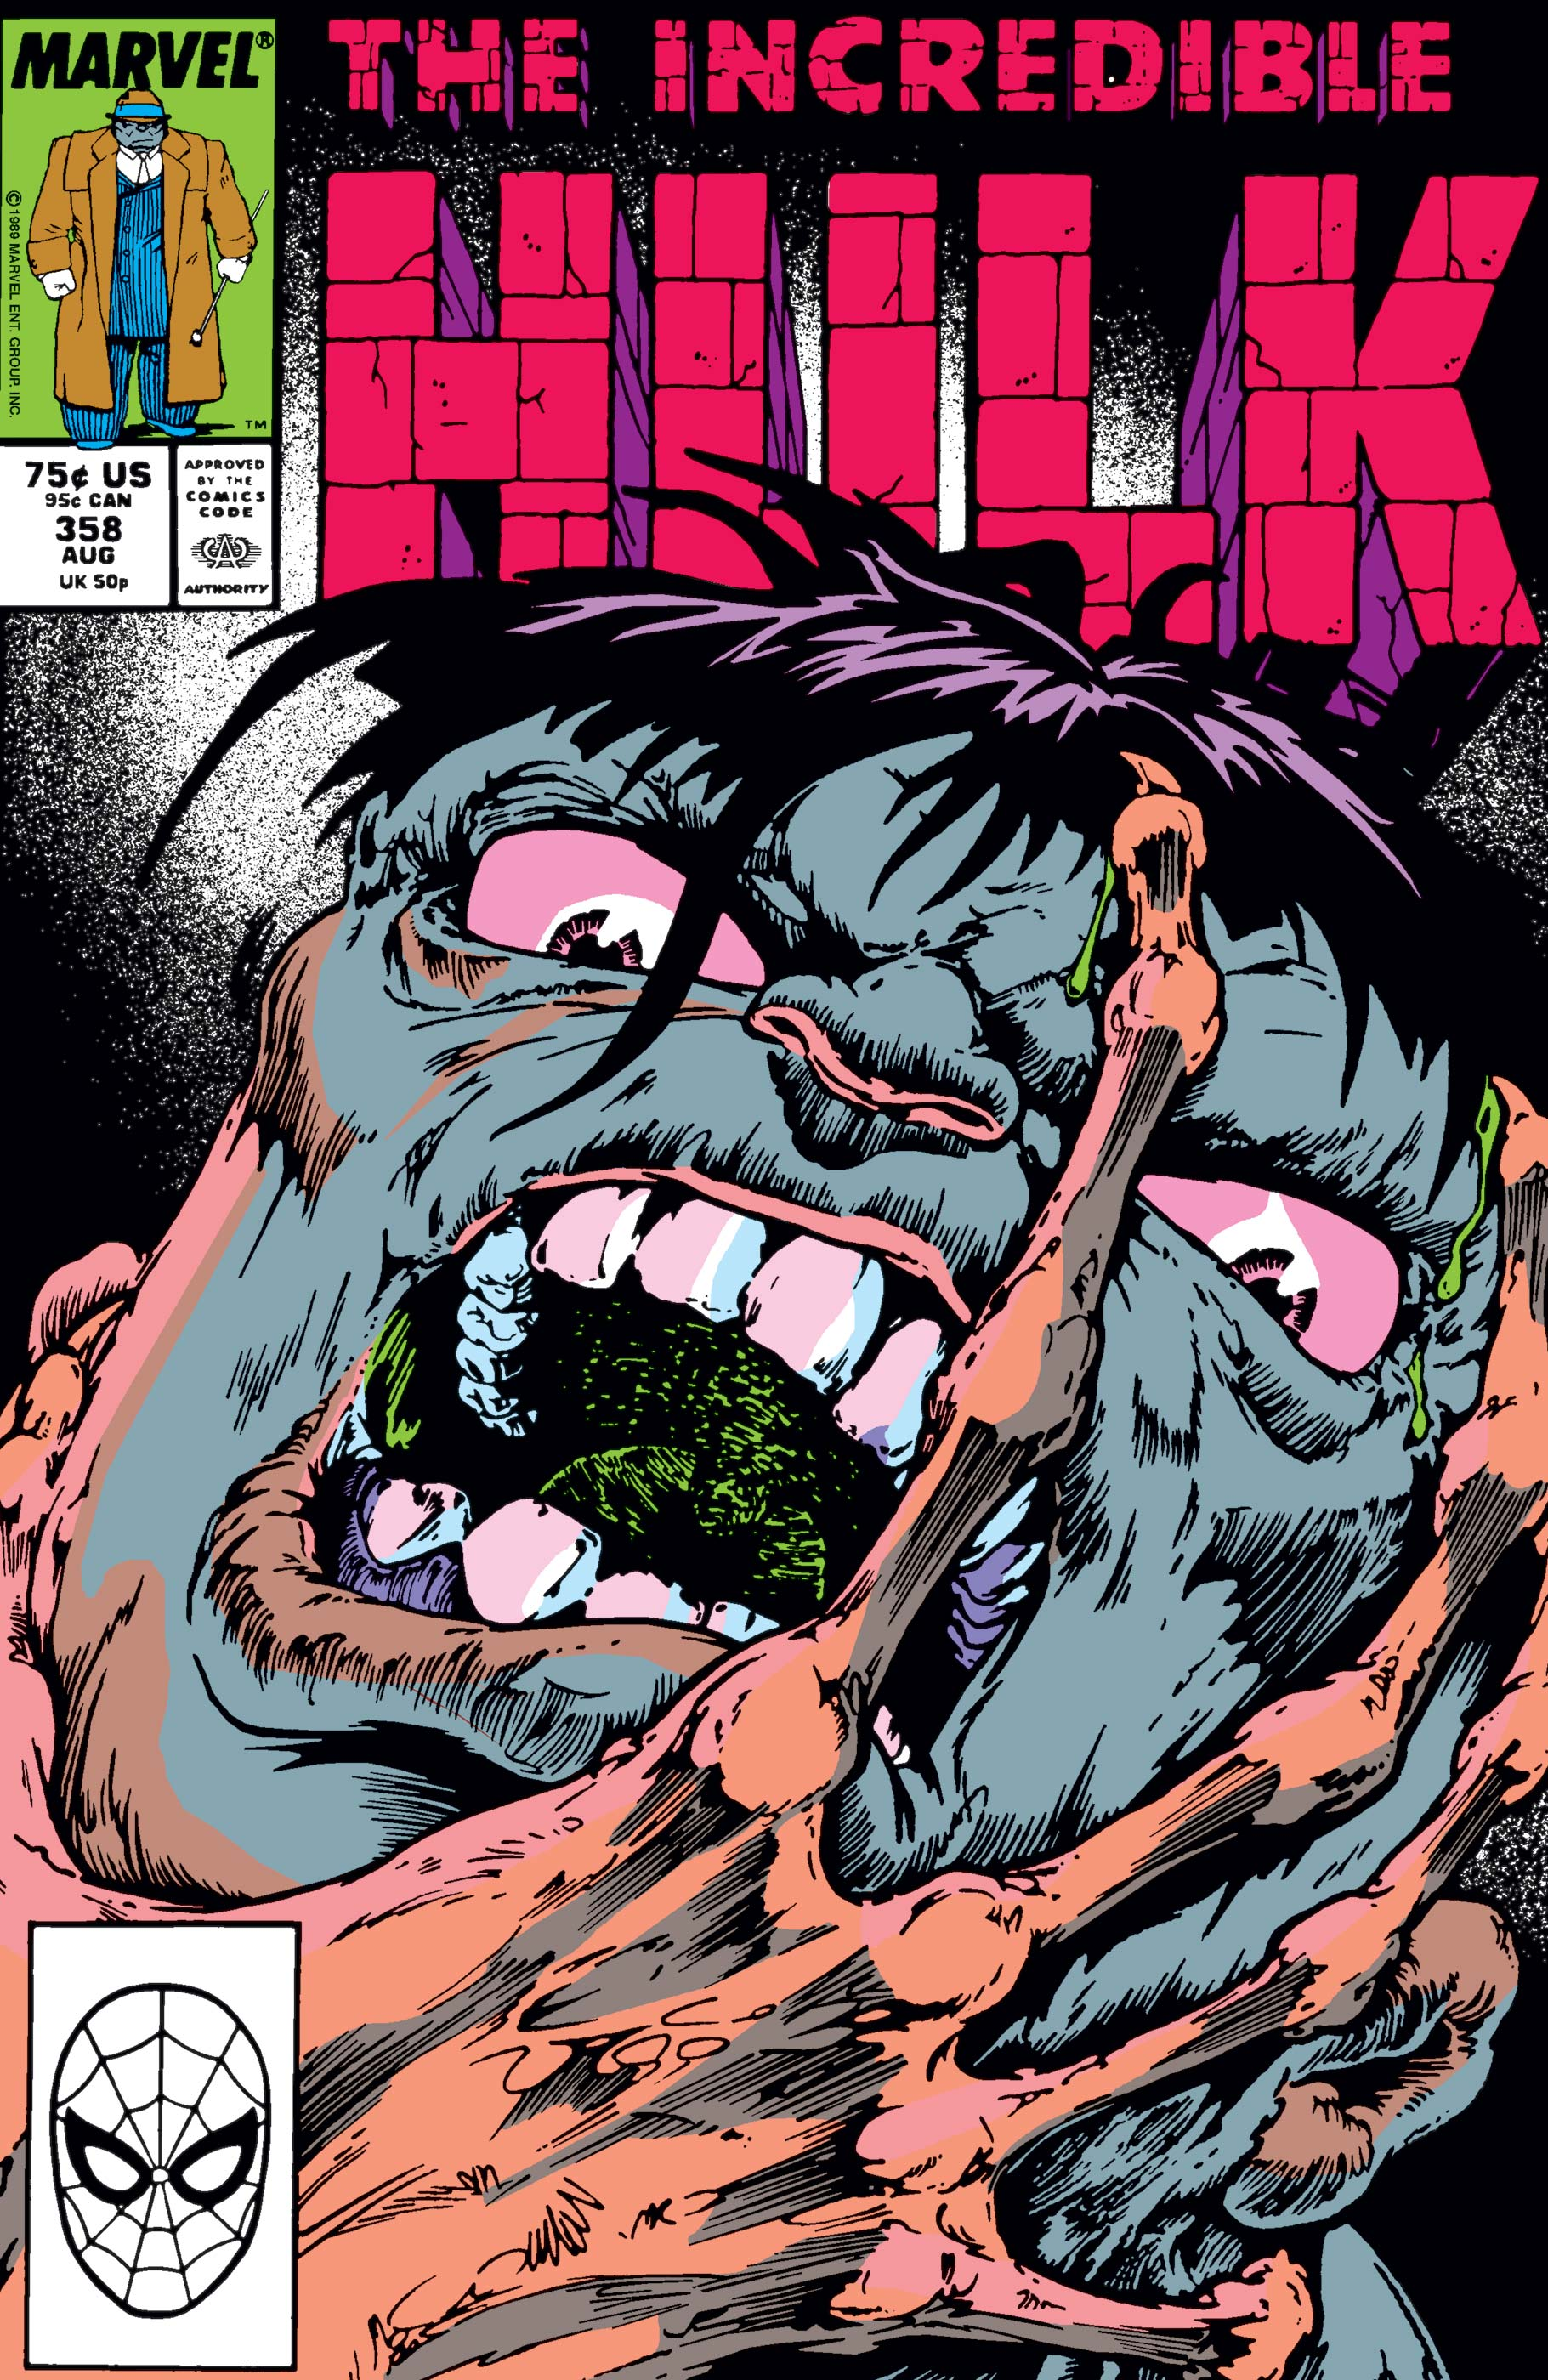 Incredible Hulk (1962) #358